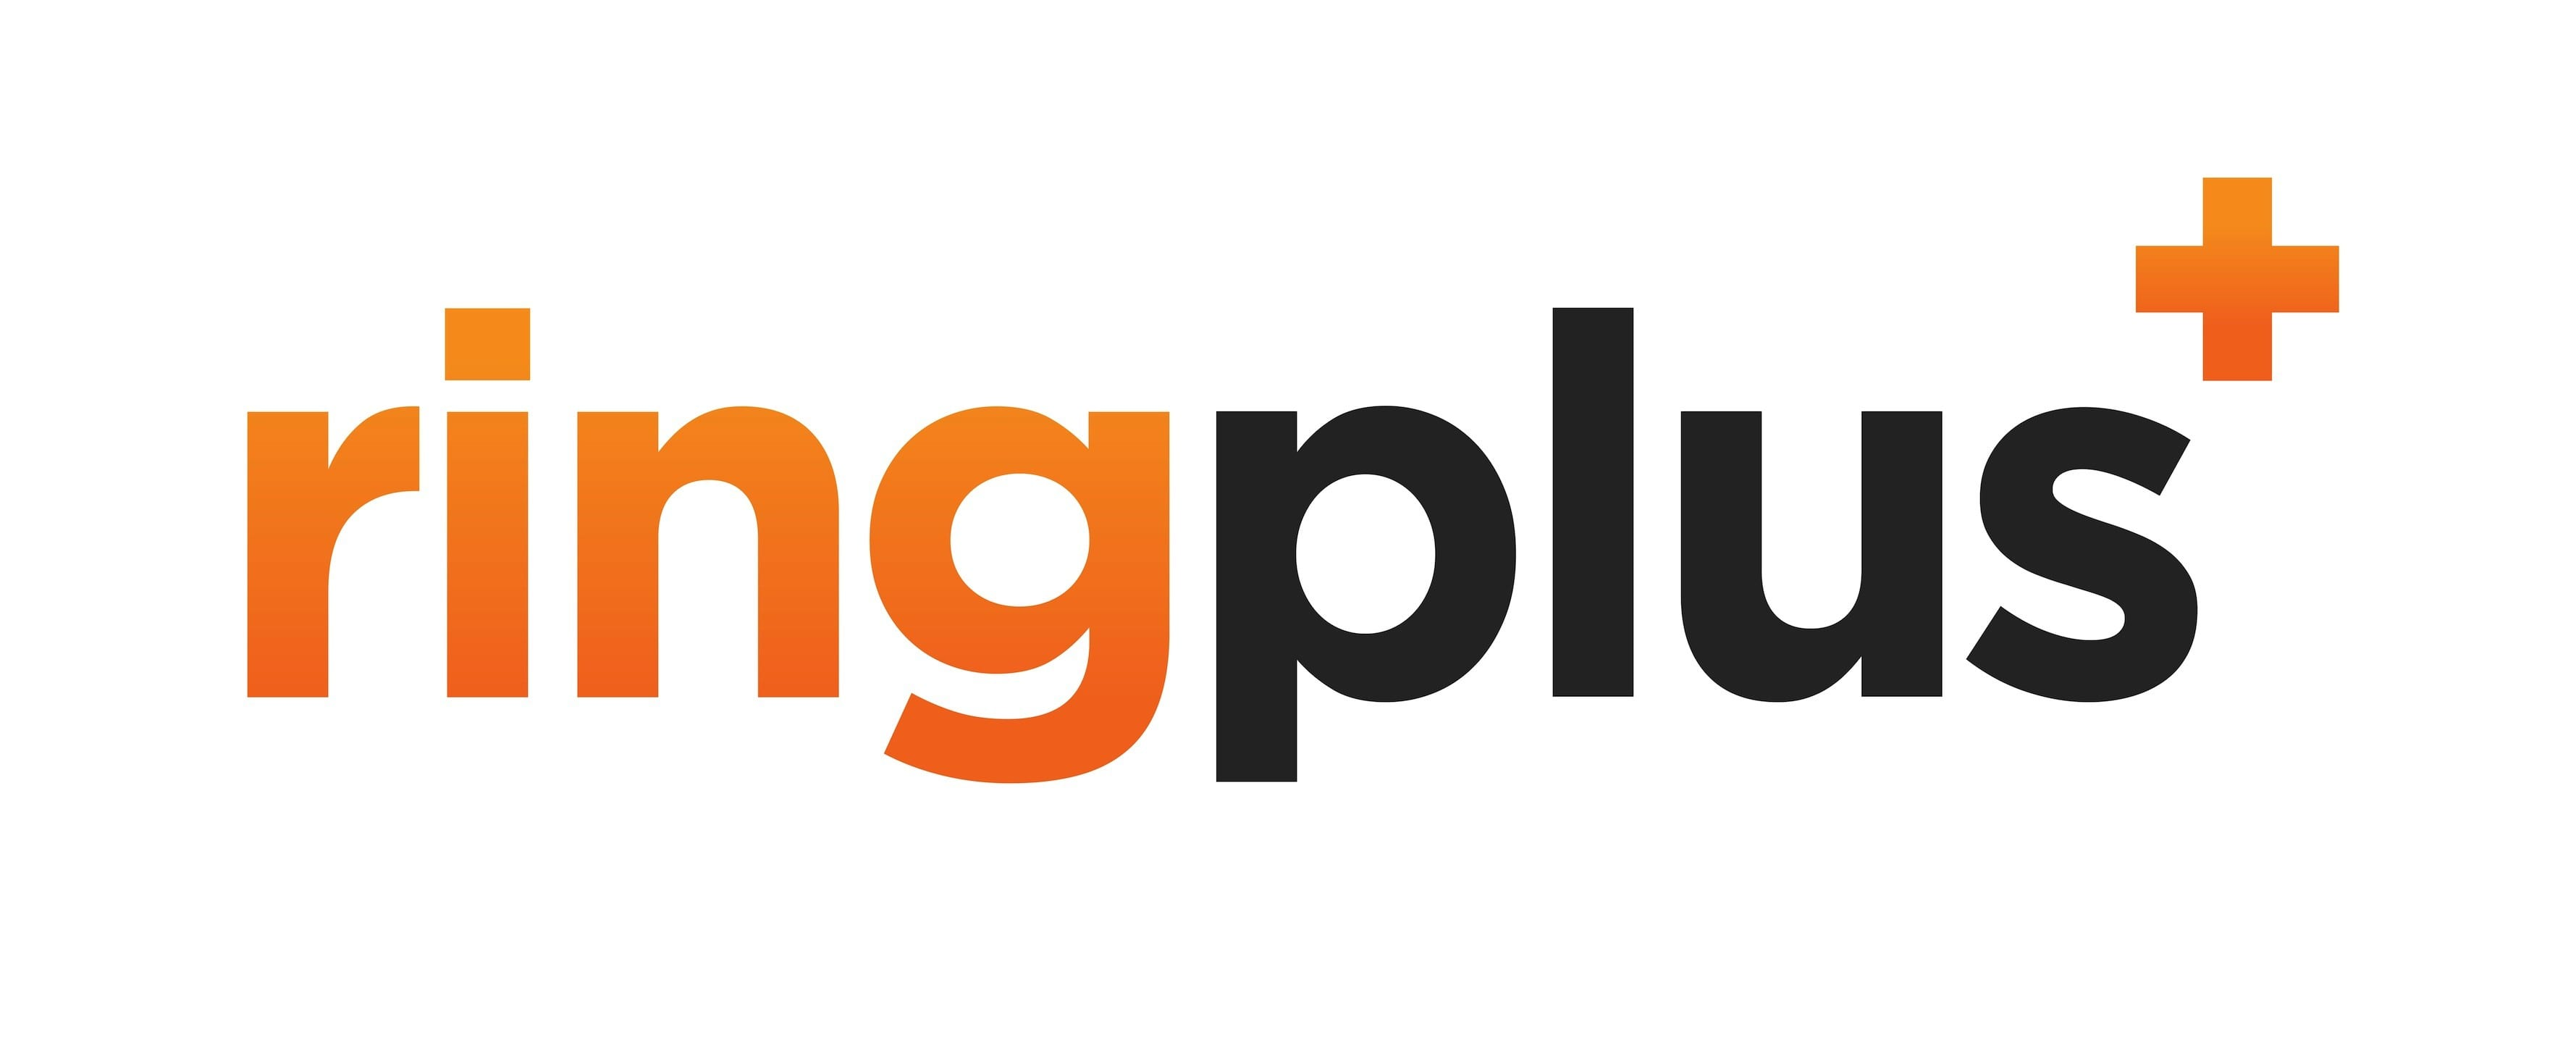 RingPlus Boardwalk Free Plan 3000 voice text and 1.5 GB LTE / full speed with tethering FREE upto Unlimited Data (128kbps) for $10/mo $25 topup